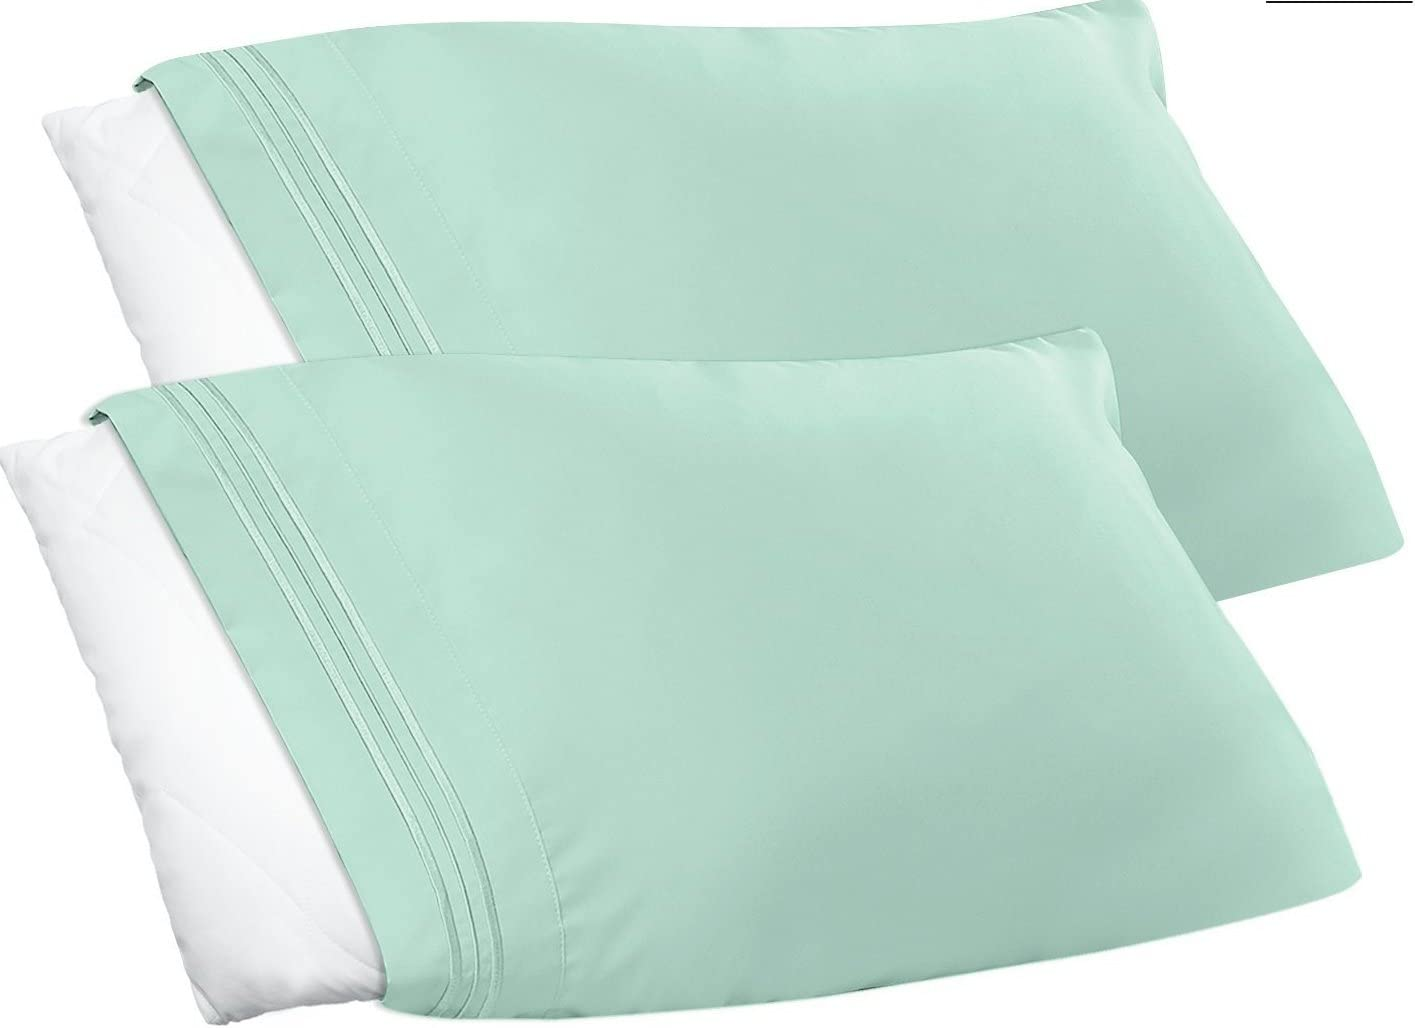 Clara Clark Premier 1800 Collection Pillowcase Set, Standard Size, Mint Green, 2 Piece